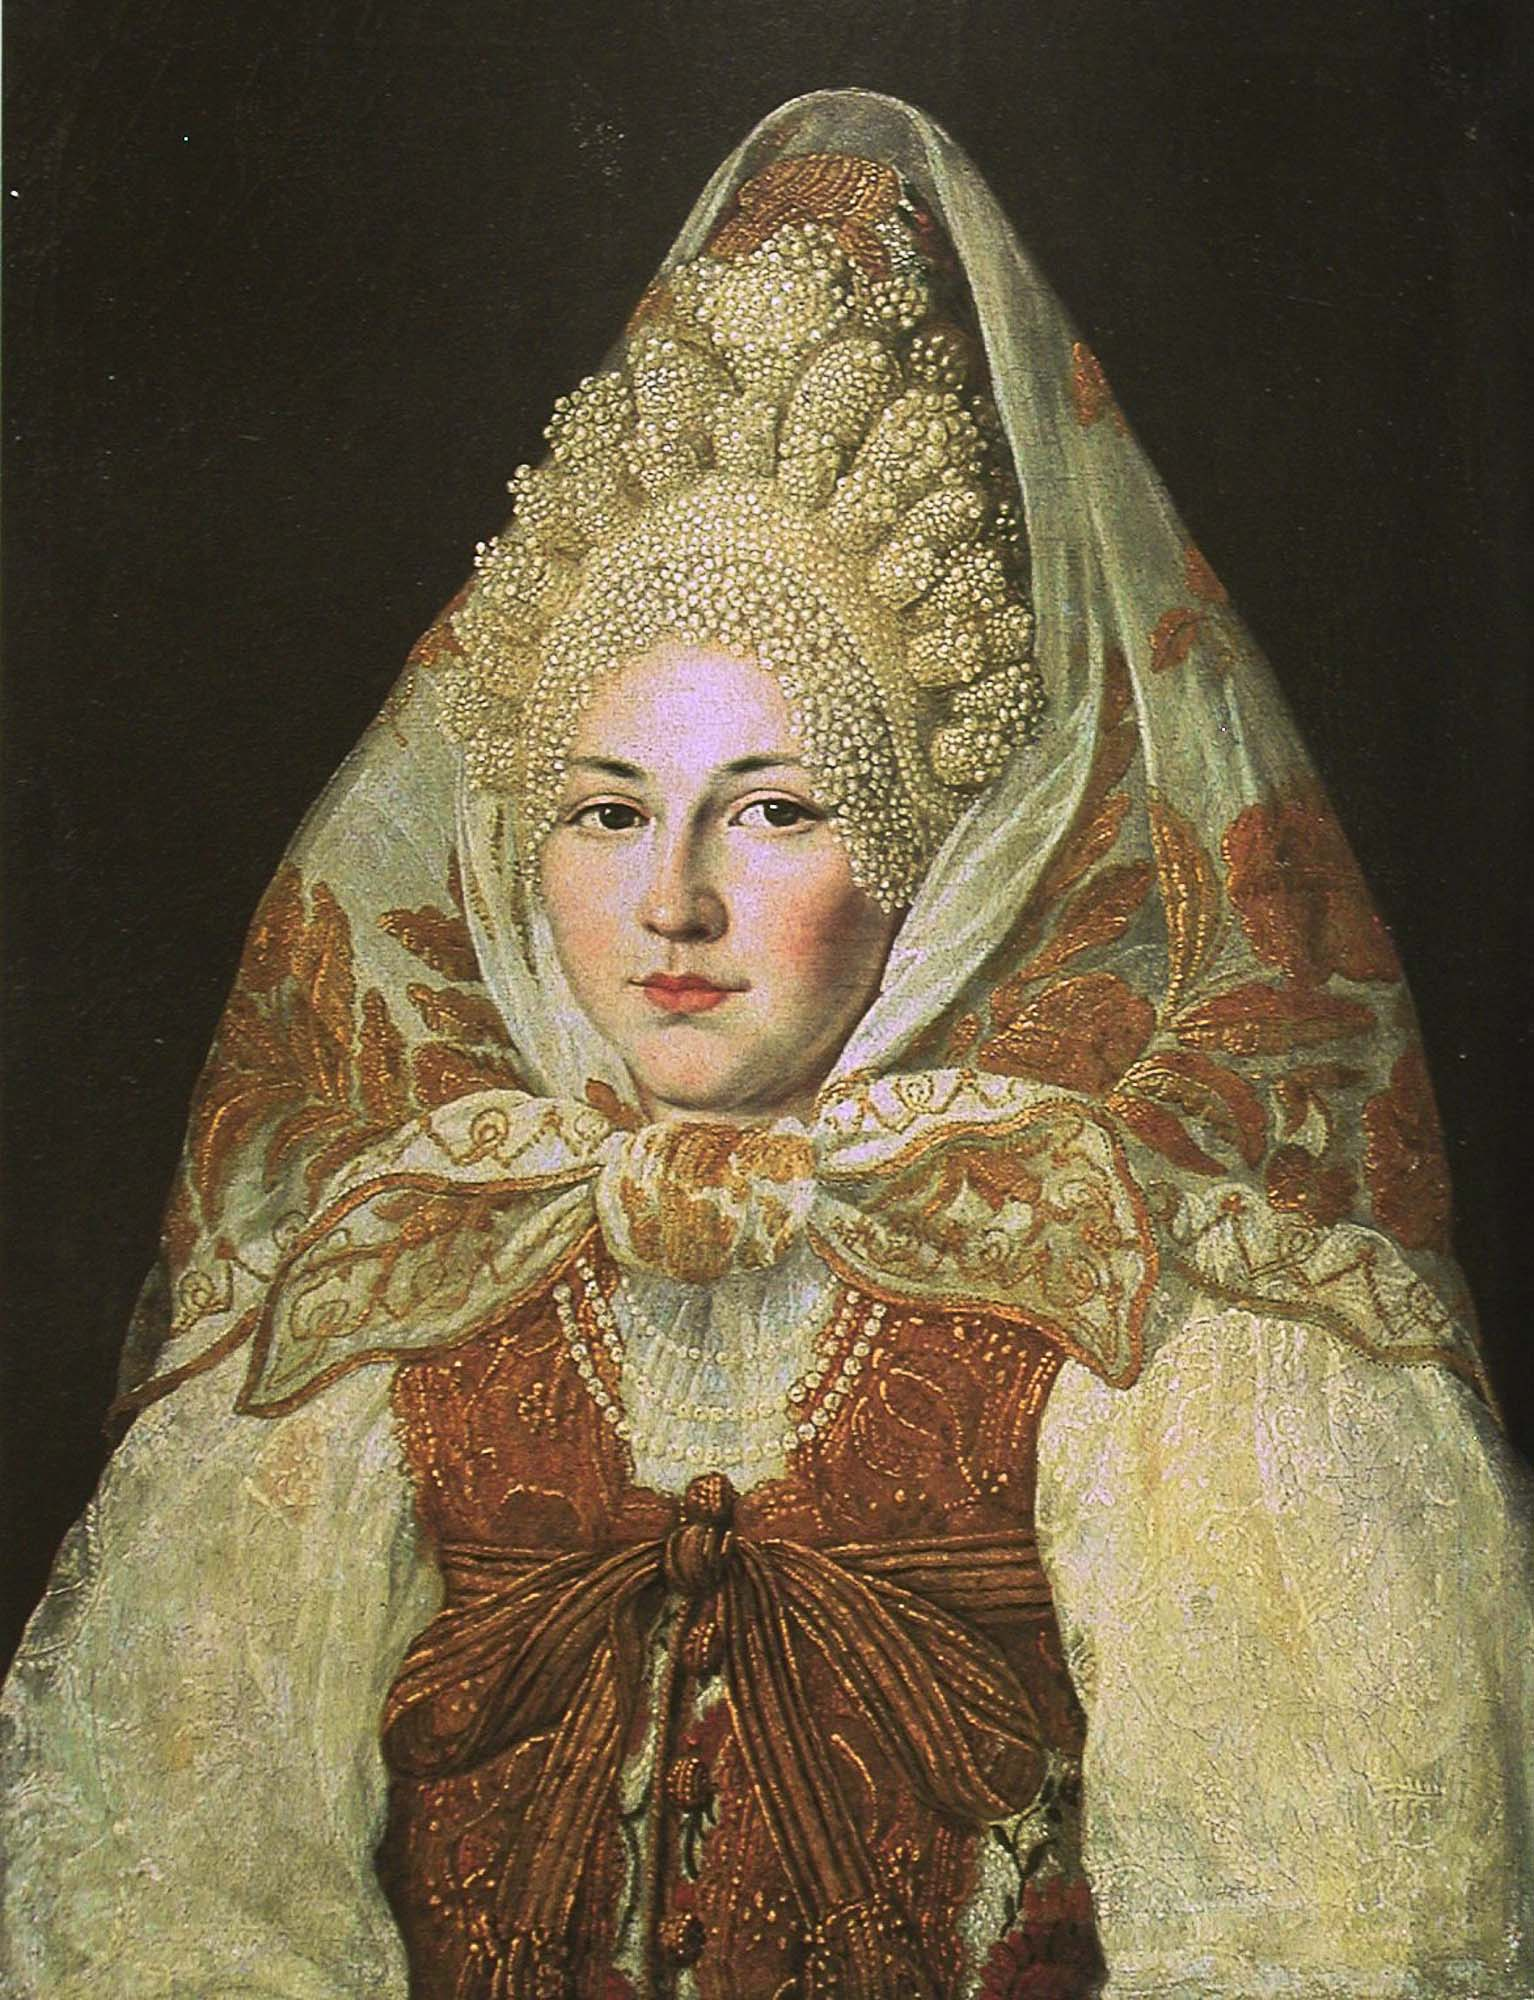 Woman in Toropetsky pearl headdress and a shawl